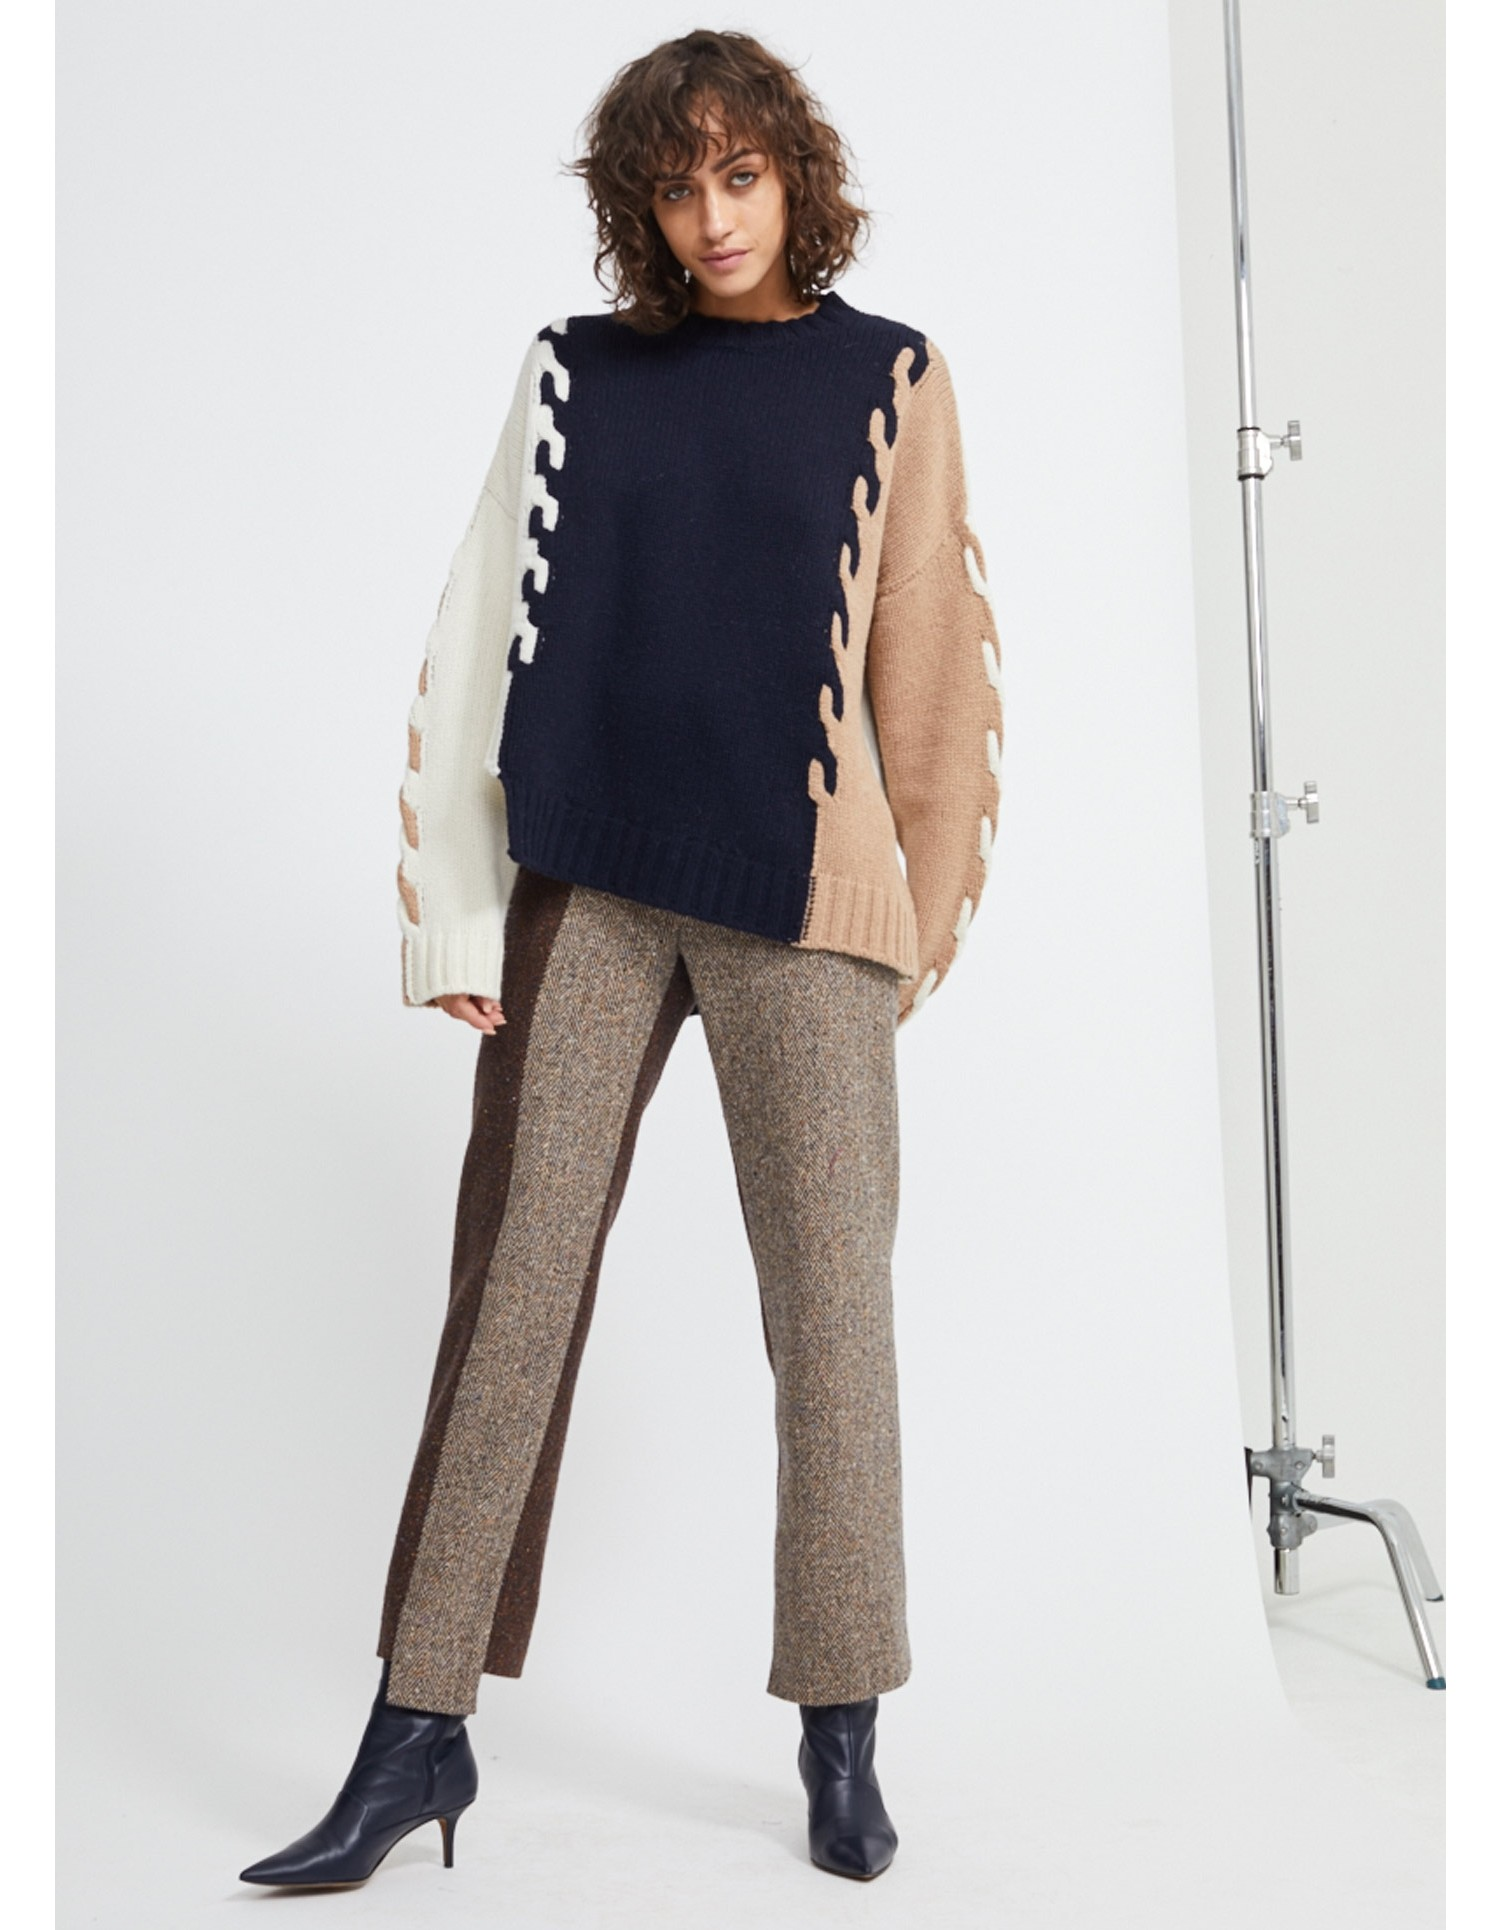 MONSE Cable Knit in Midnight and Ivory Flat Front